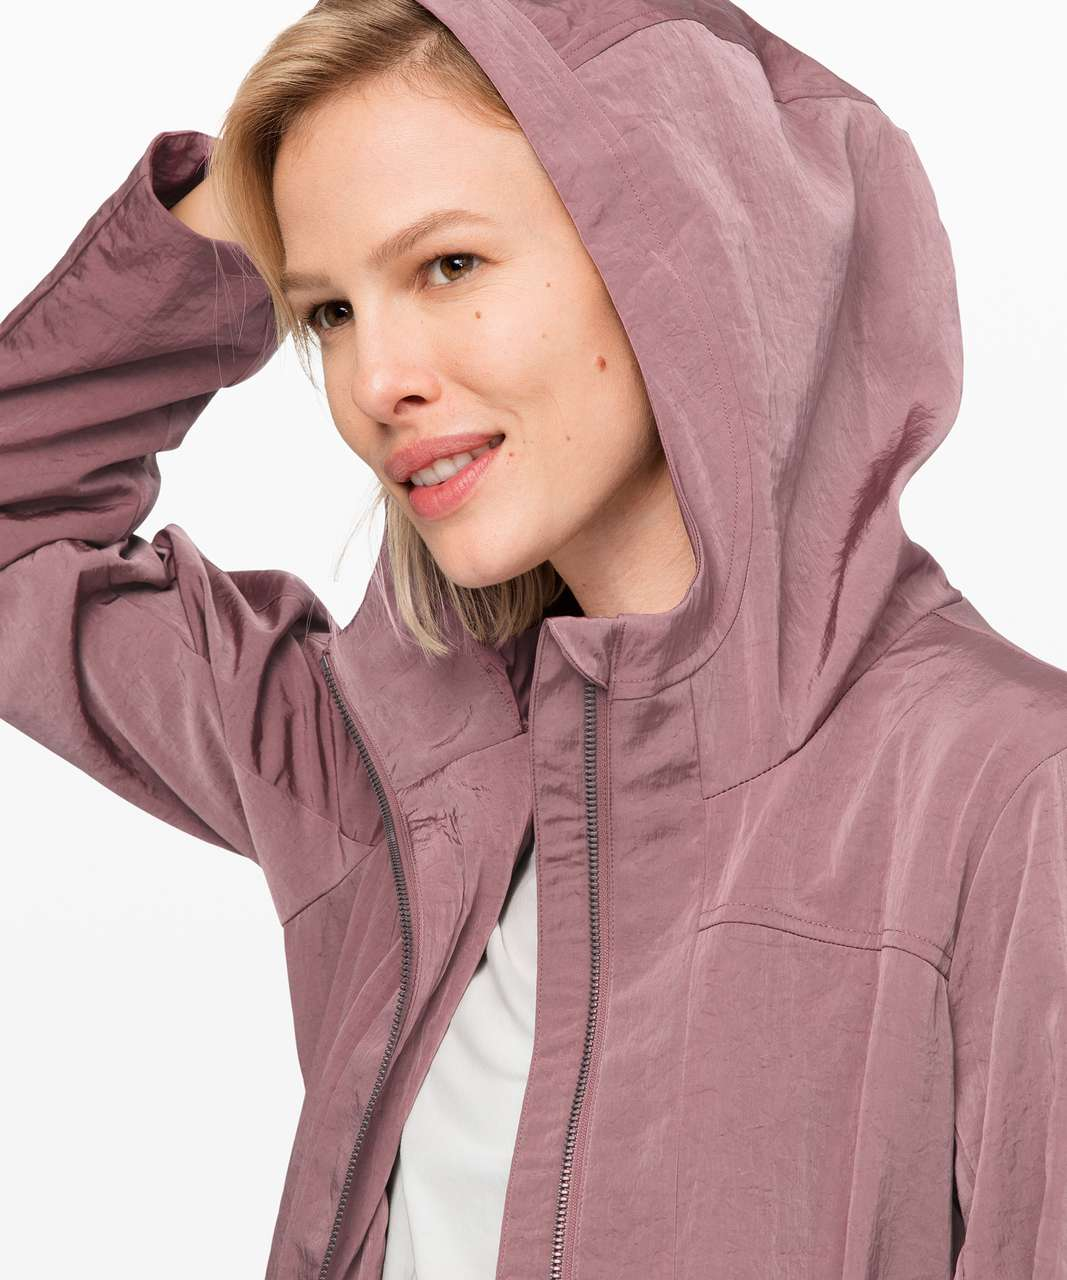 Lululemon New Moves Jacket - Misty Mocha